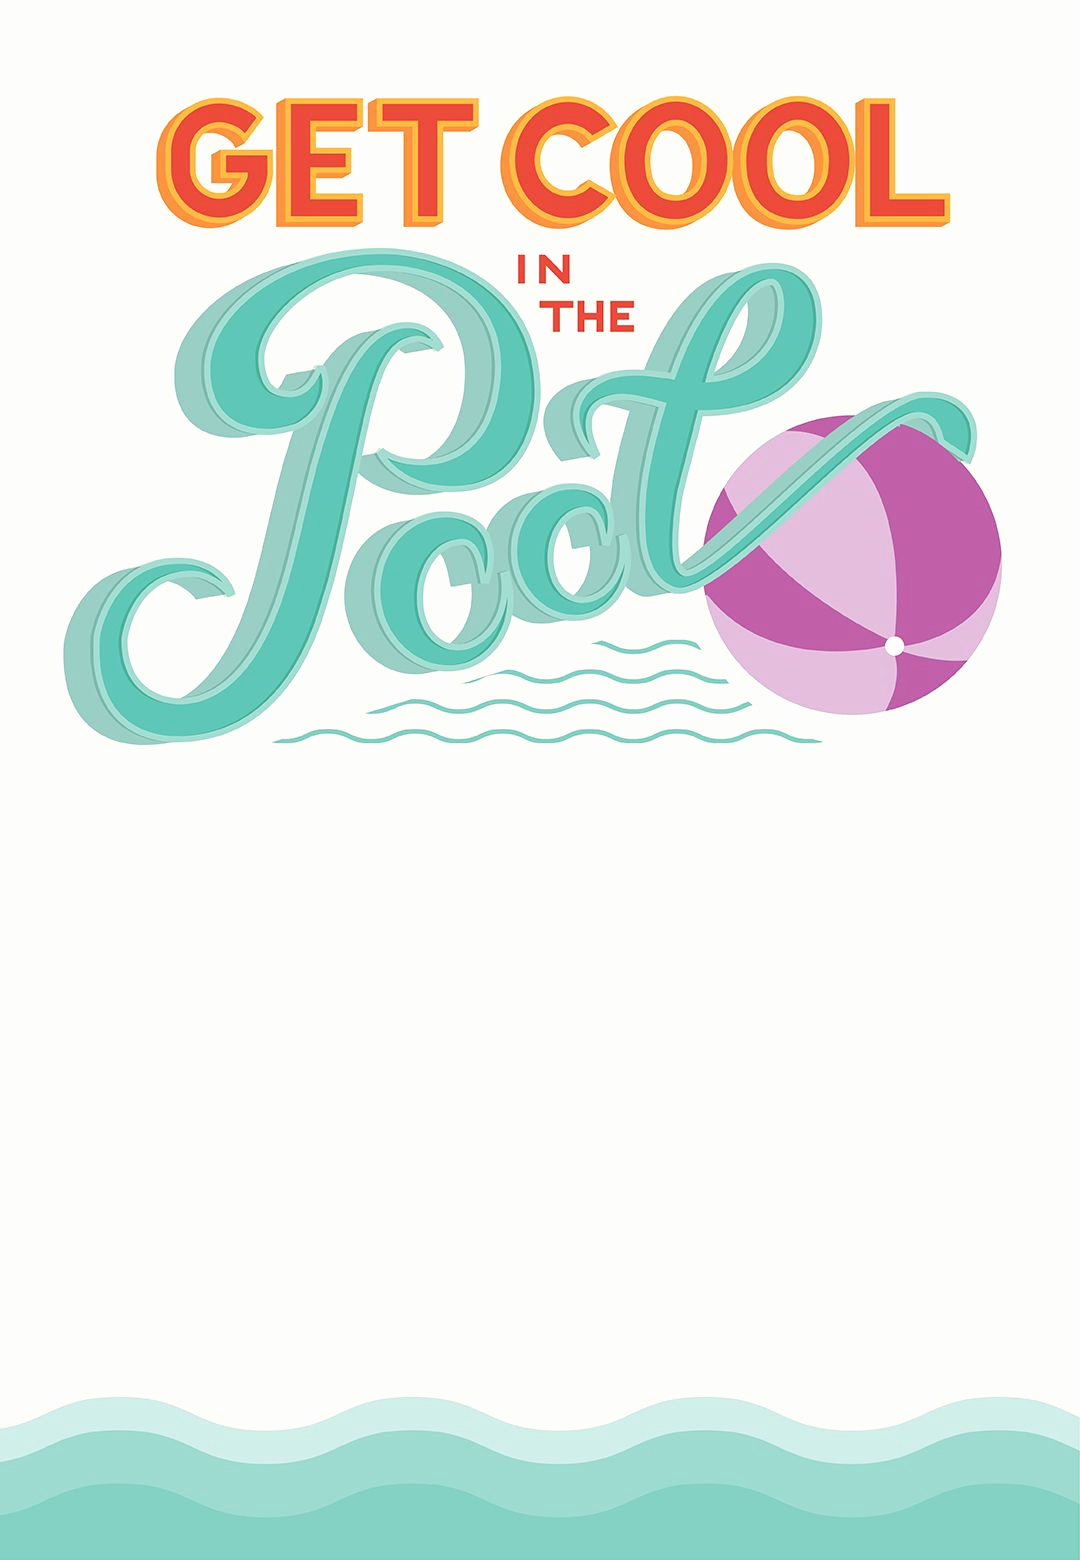 Pool Party Invitation Templates Best Of Pool Party Free Printable Party Invitation Template